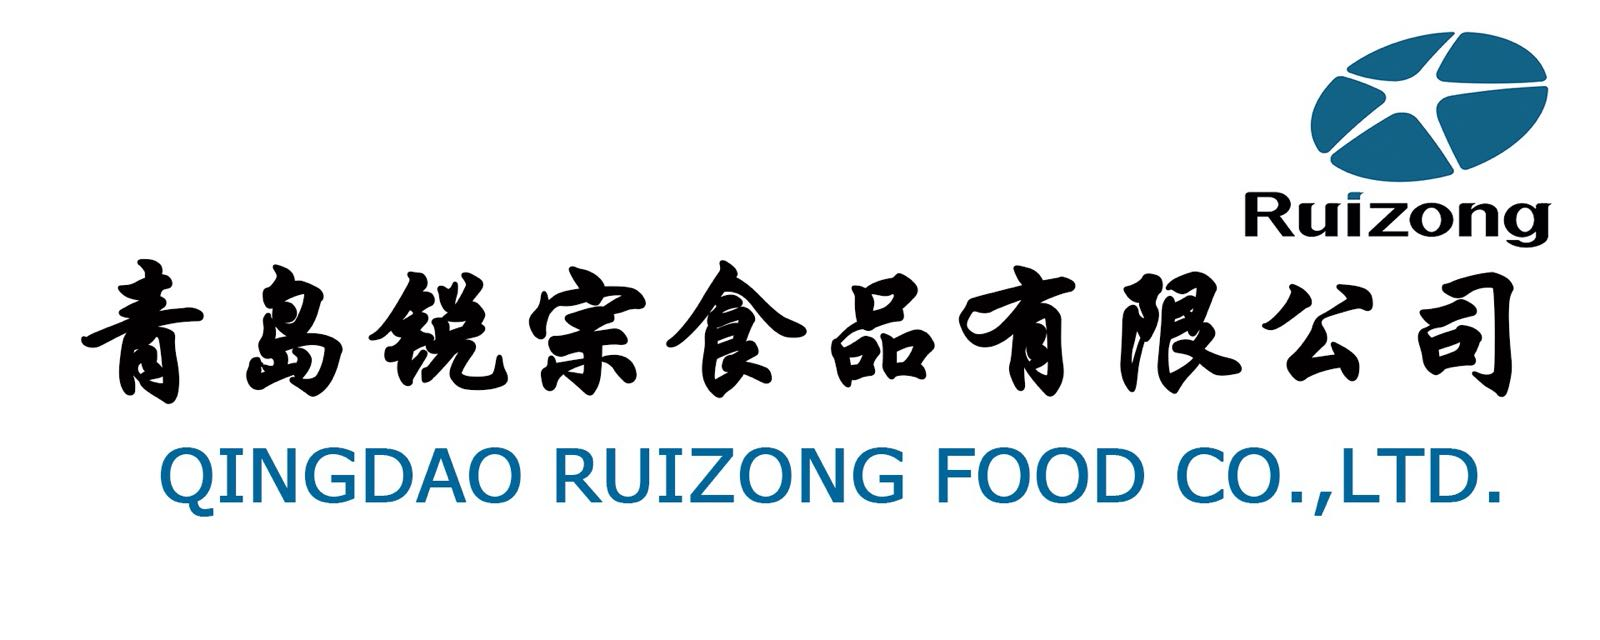 QINGDAO RUIZONG FOOD CO.,LTD.